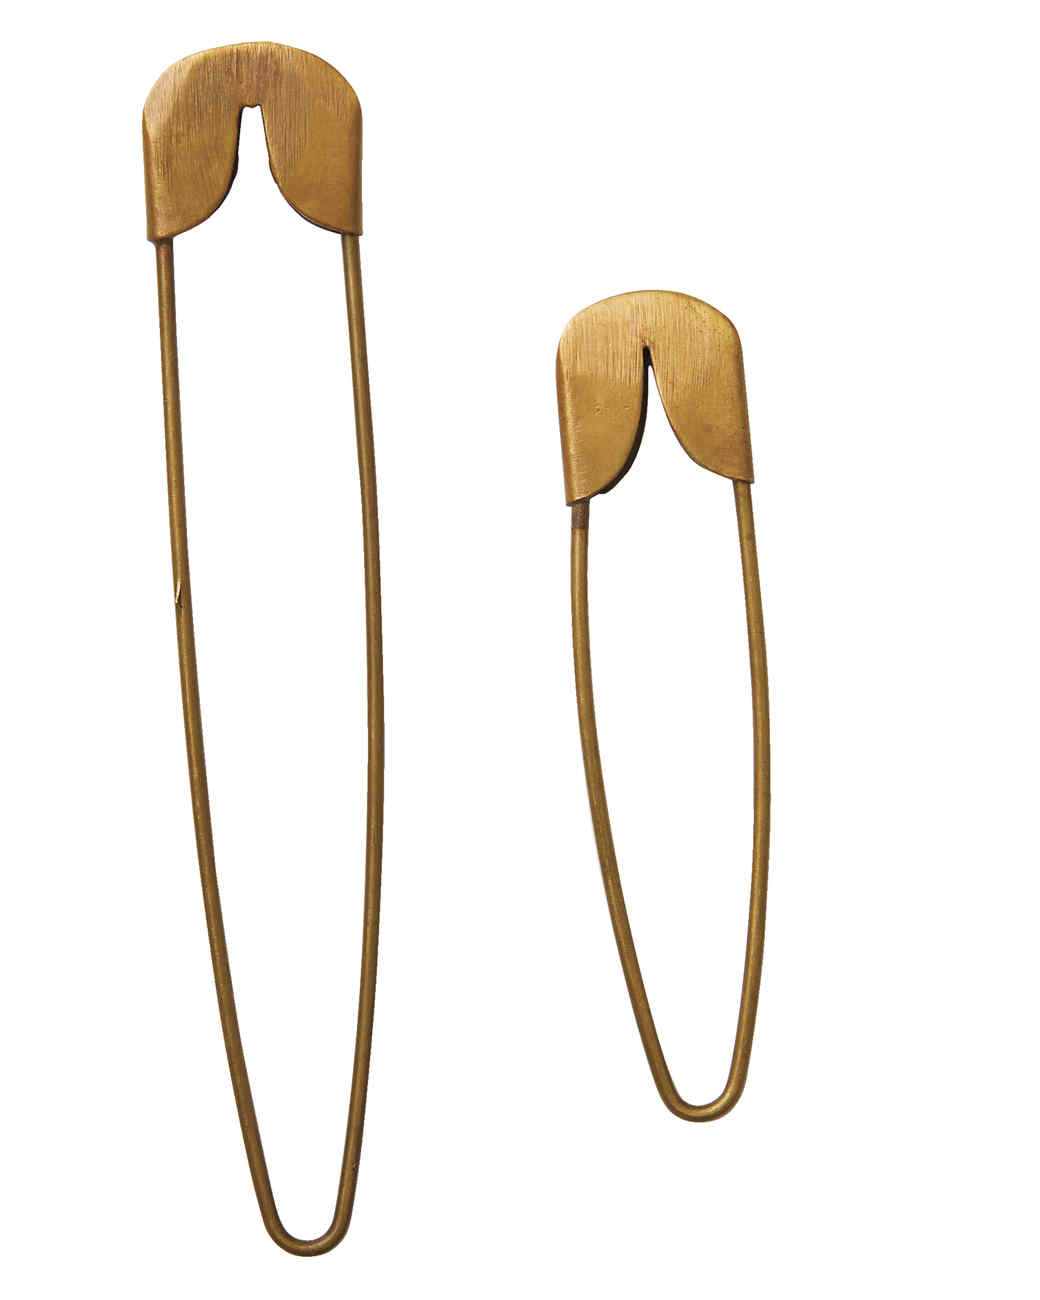 safety-pins-large-gold-218-d111535.jpg